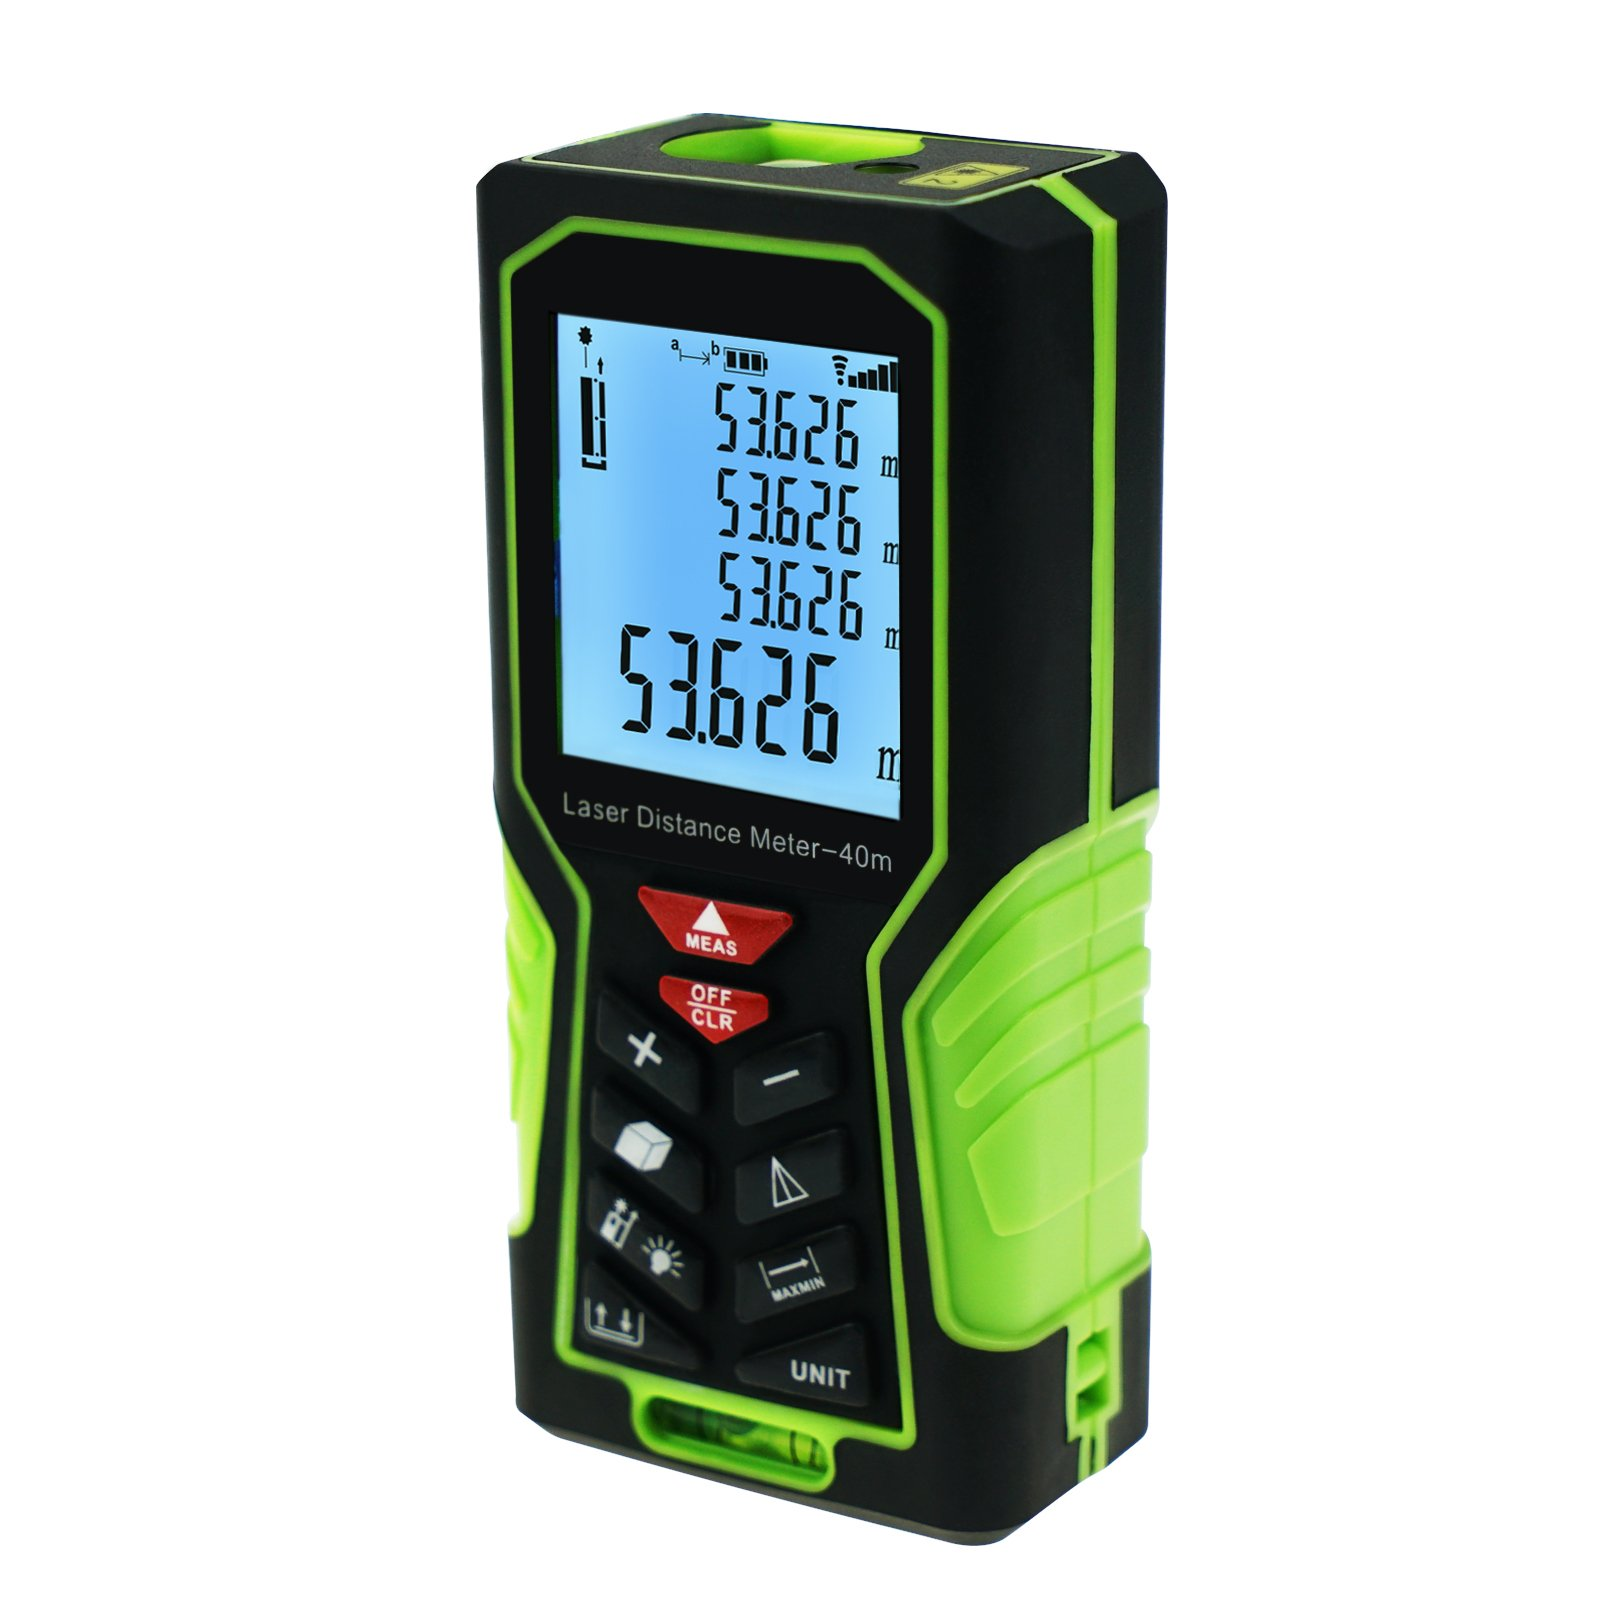 Digital 40M/131ft Laser Measuring Tape Distance Meter, Handheld Range Finder Device Area & Volume Tools with Backlight &Bubble Level, 1mm accuracy